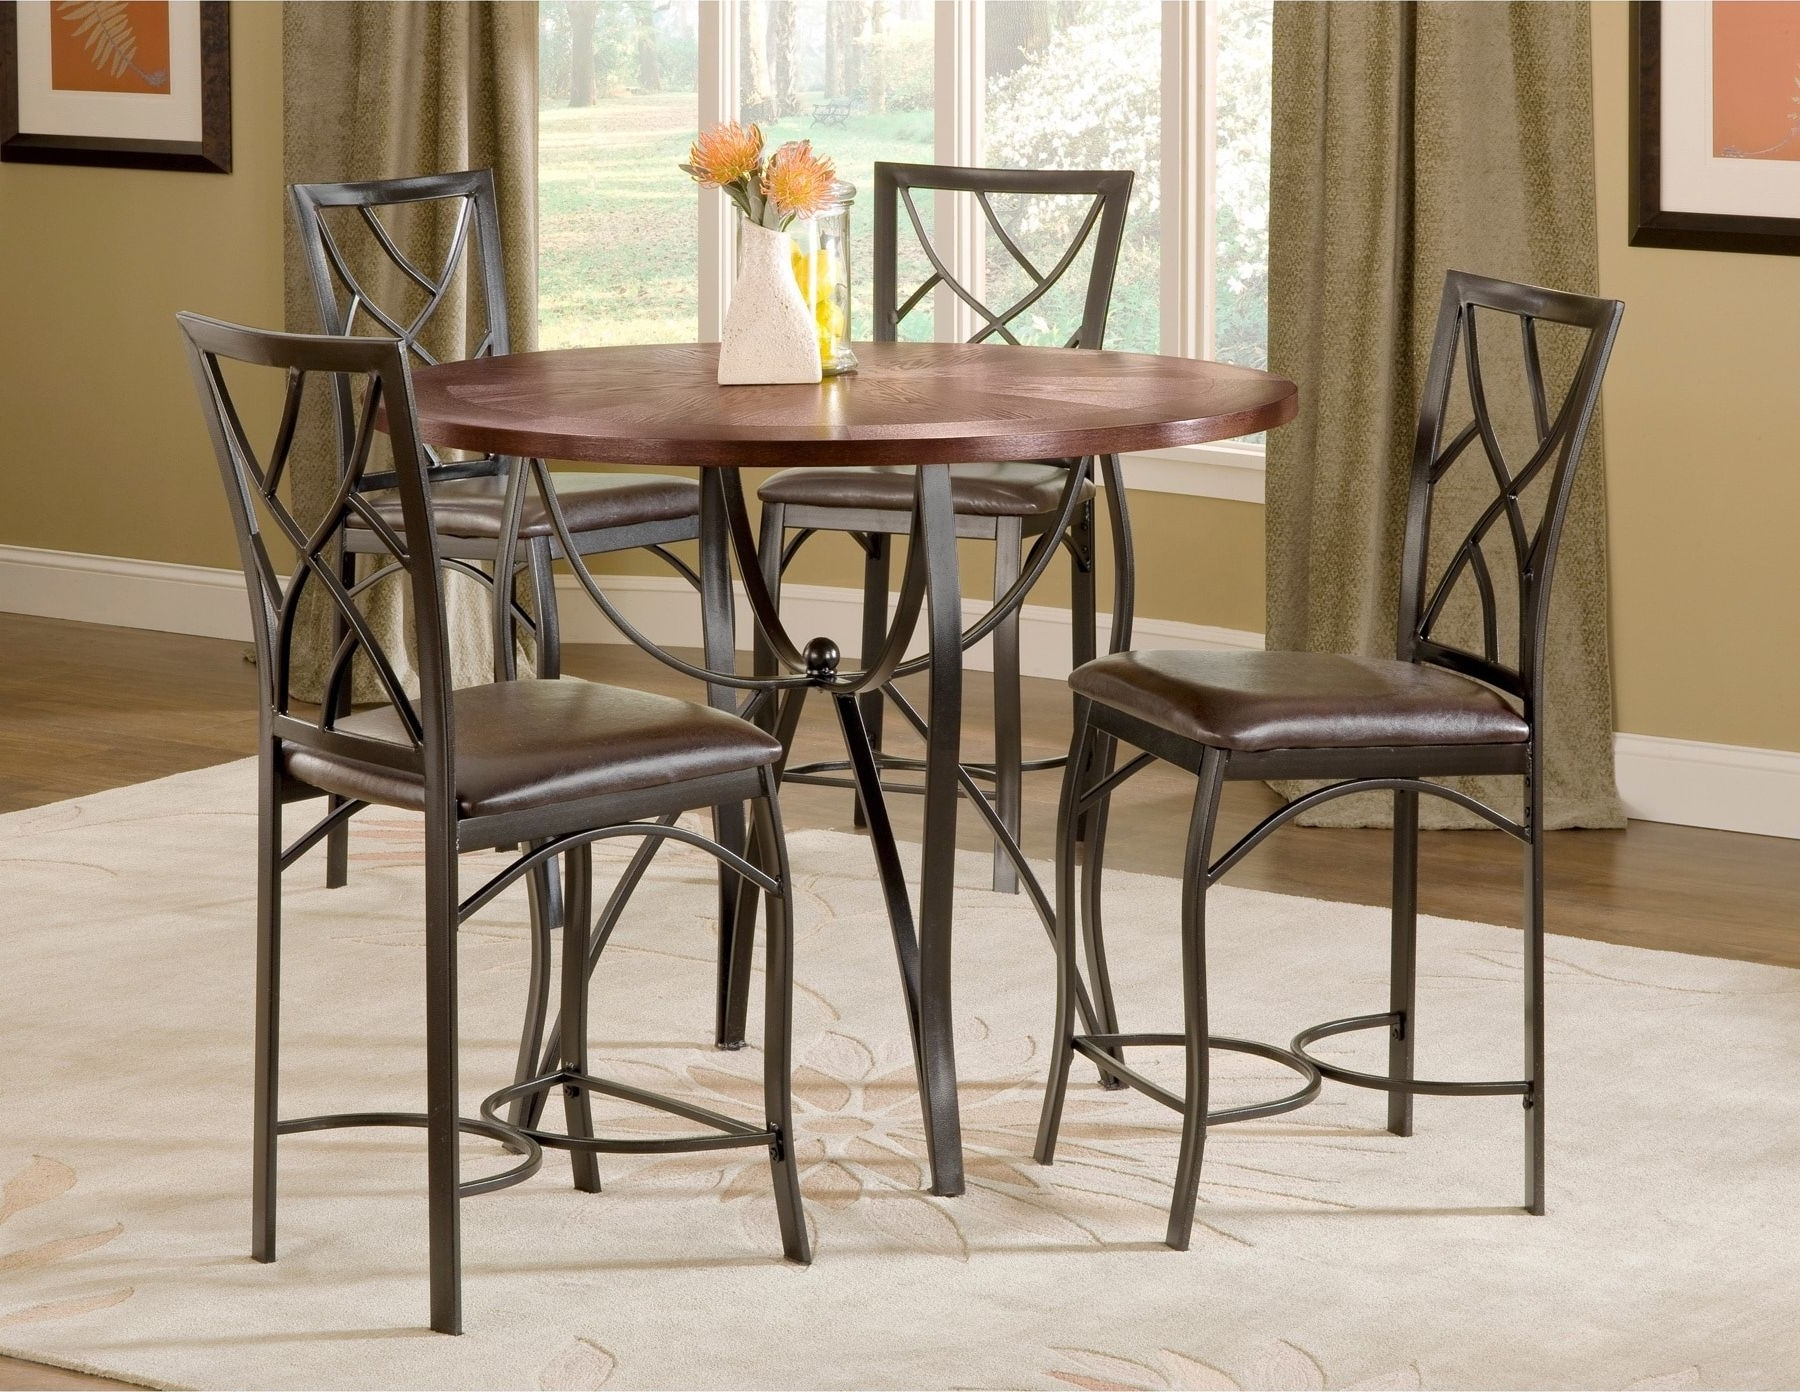 Craftsman 9 Piece Extension Dining Sets With Uph Side Chairs For Most Up To Date Sanford Merlot 5 Piece Counter Height Table And 4 Chairs Black Metal (View 8 of 25)